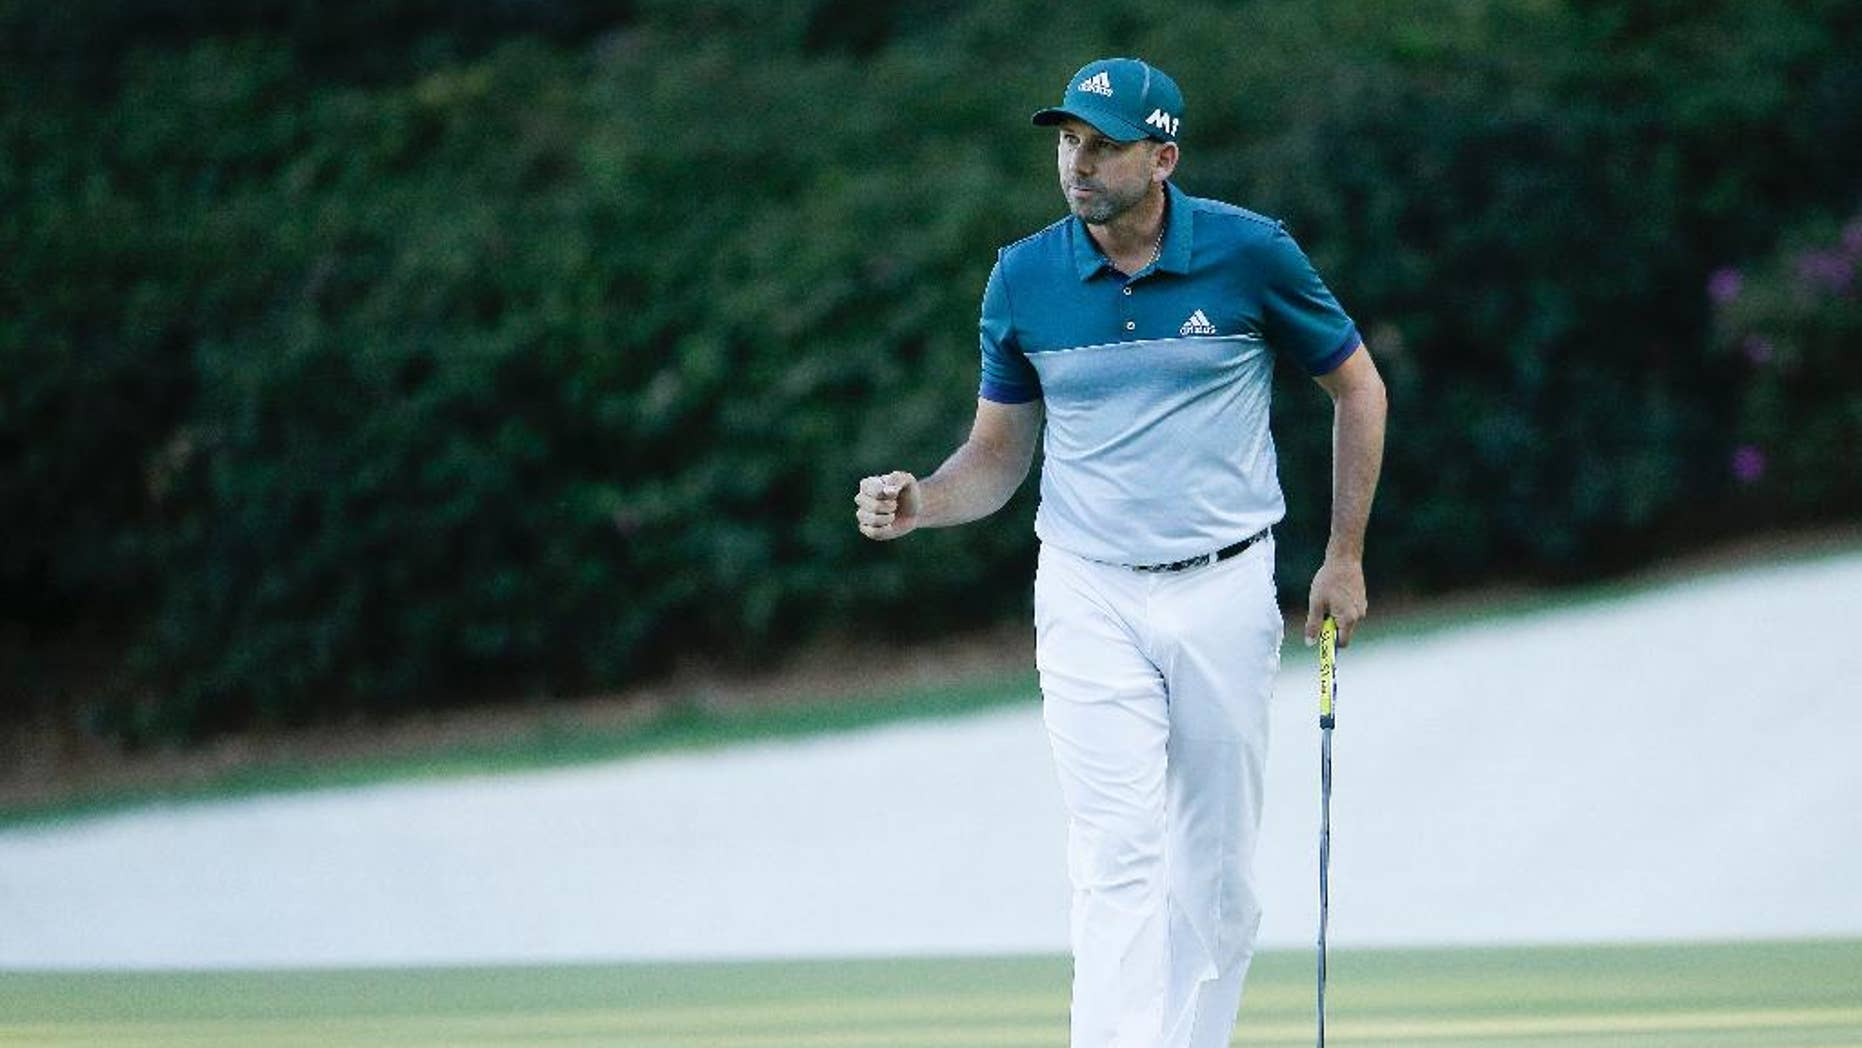 Sergio Garcia, of Spain, reacts after saving par on the 13th hole during the final round of the Masters golf tournament, Sunday, April 9, 2017, in Augusta, Ga. (AP Photo/Charlie Riedel)